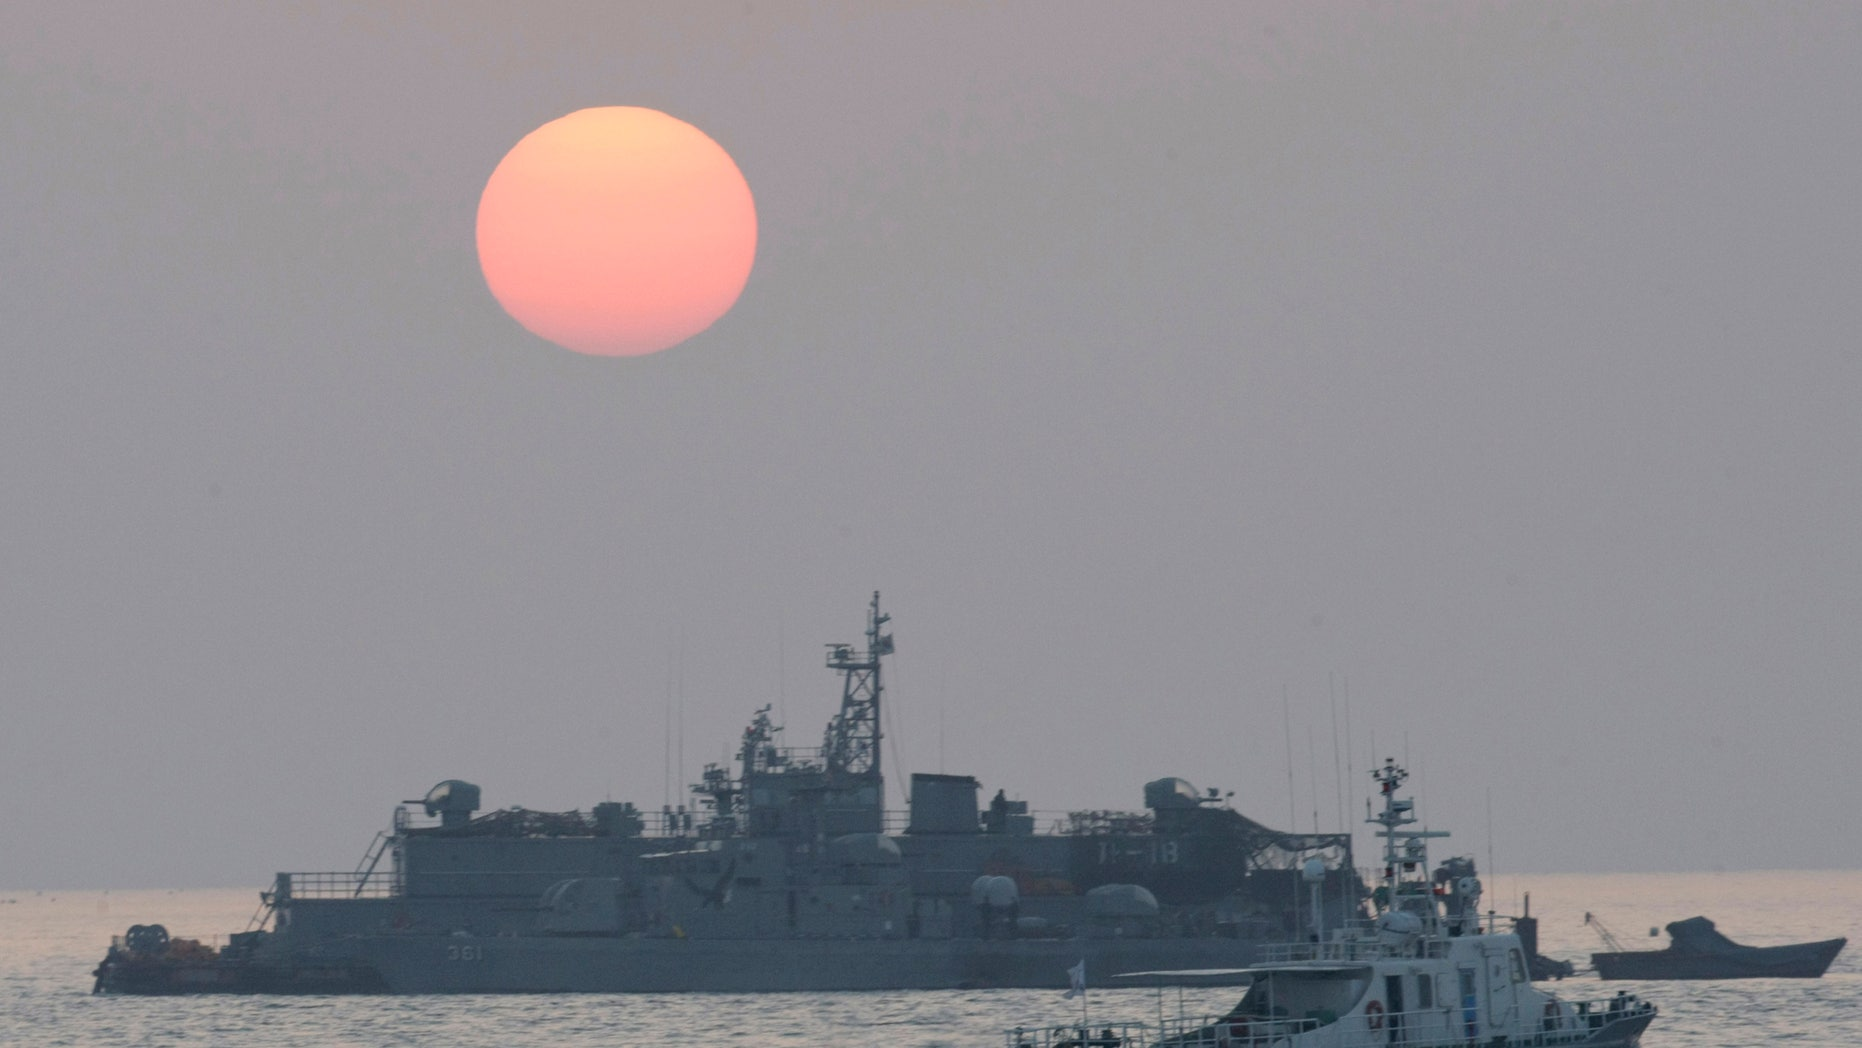 A government ship sails past the South Korean Navy's floating base as the sun rises near Yeonpyeong island, South Korea, Wednesday, Dec. 22, 2010.